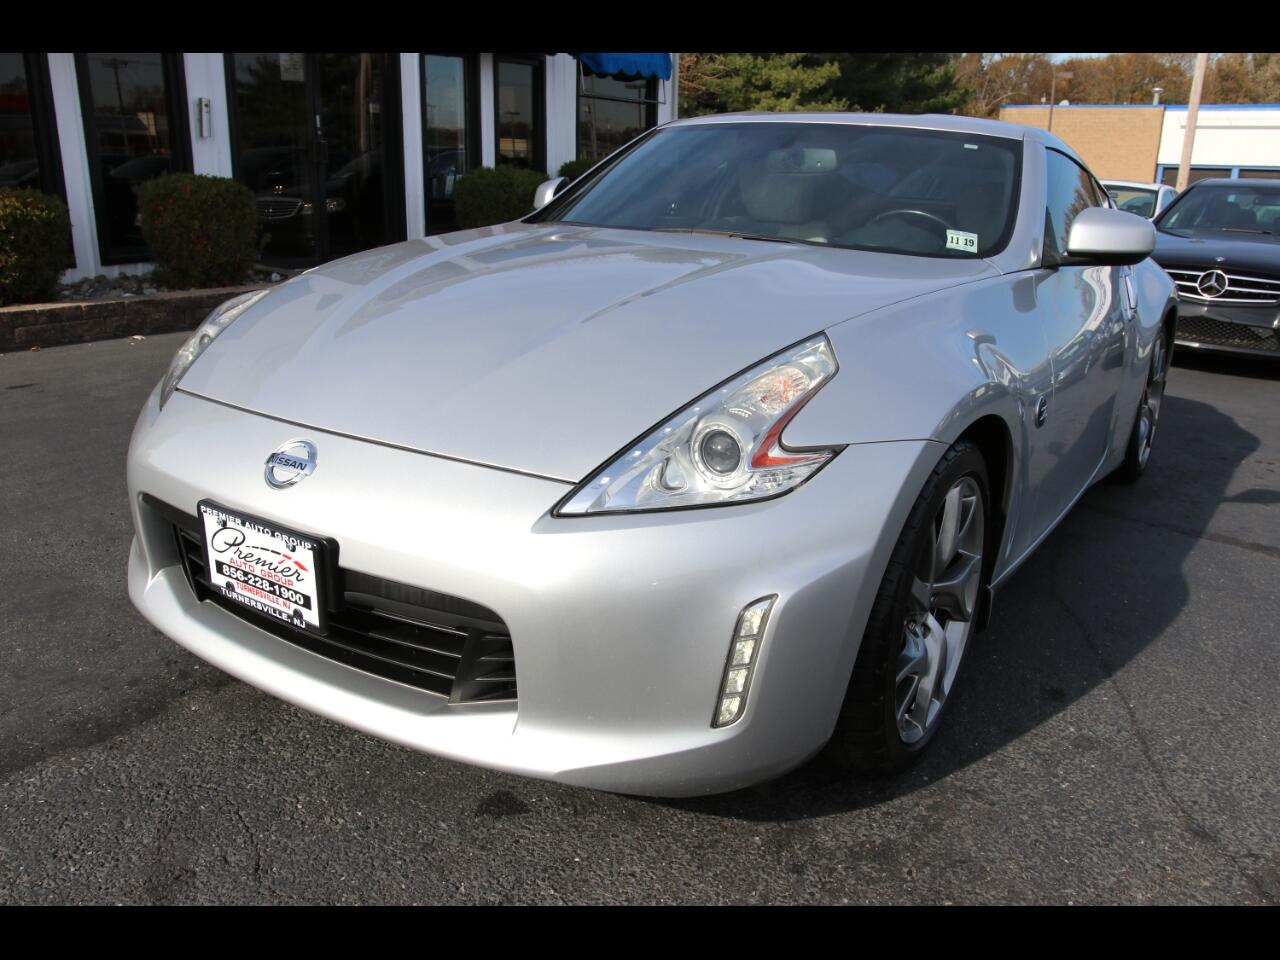 Nissan 370Z 2dr Cpe Auto Touring 2014